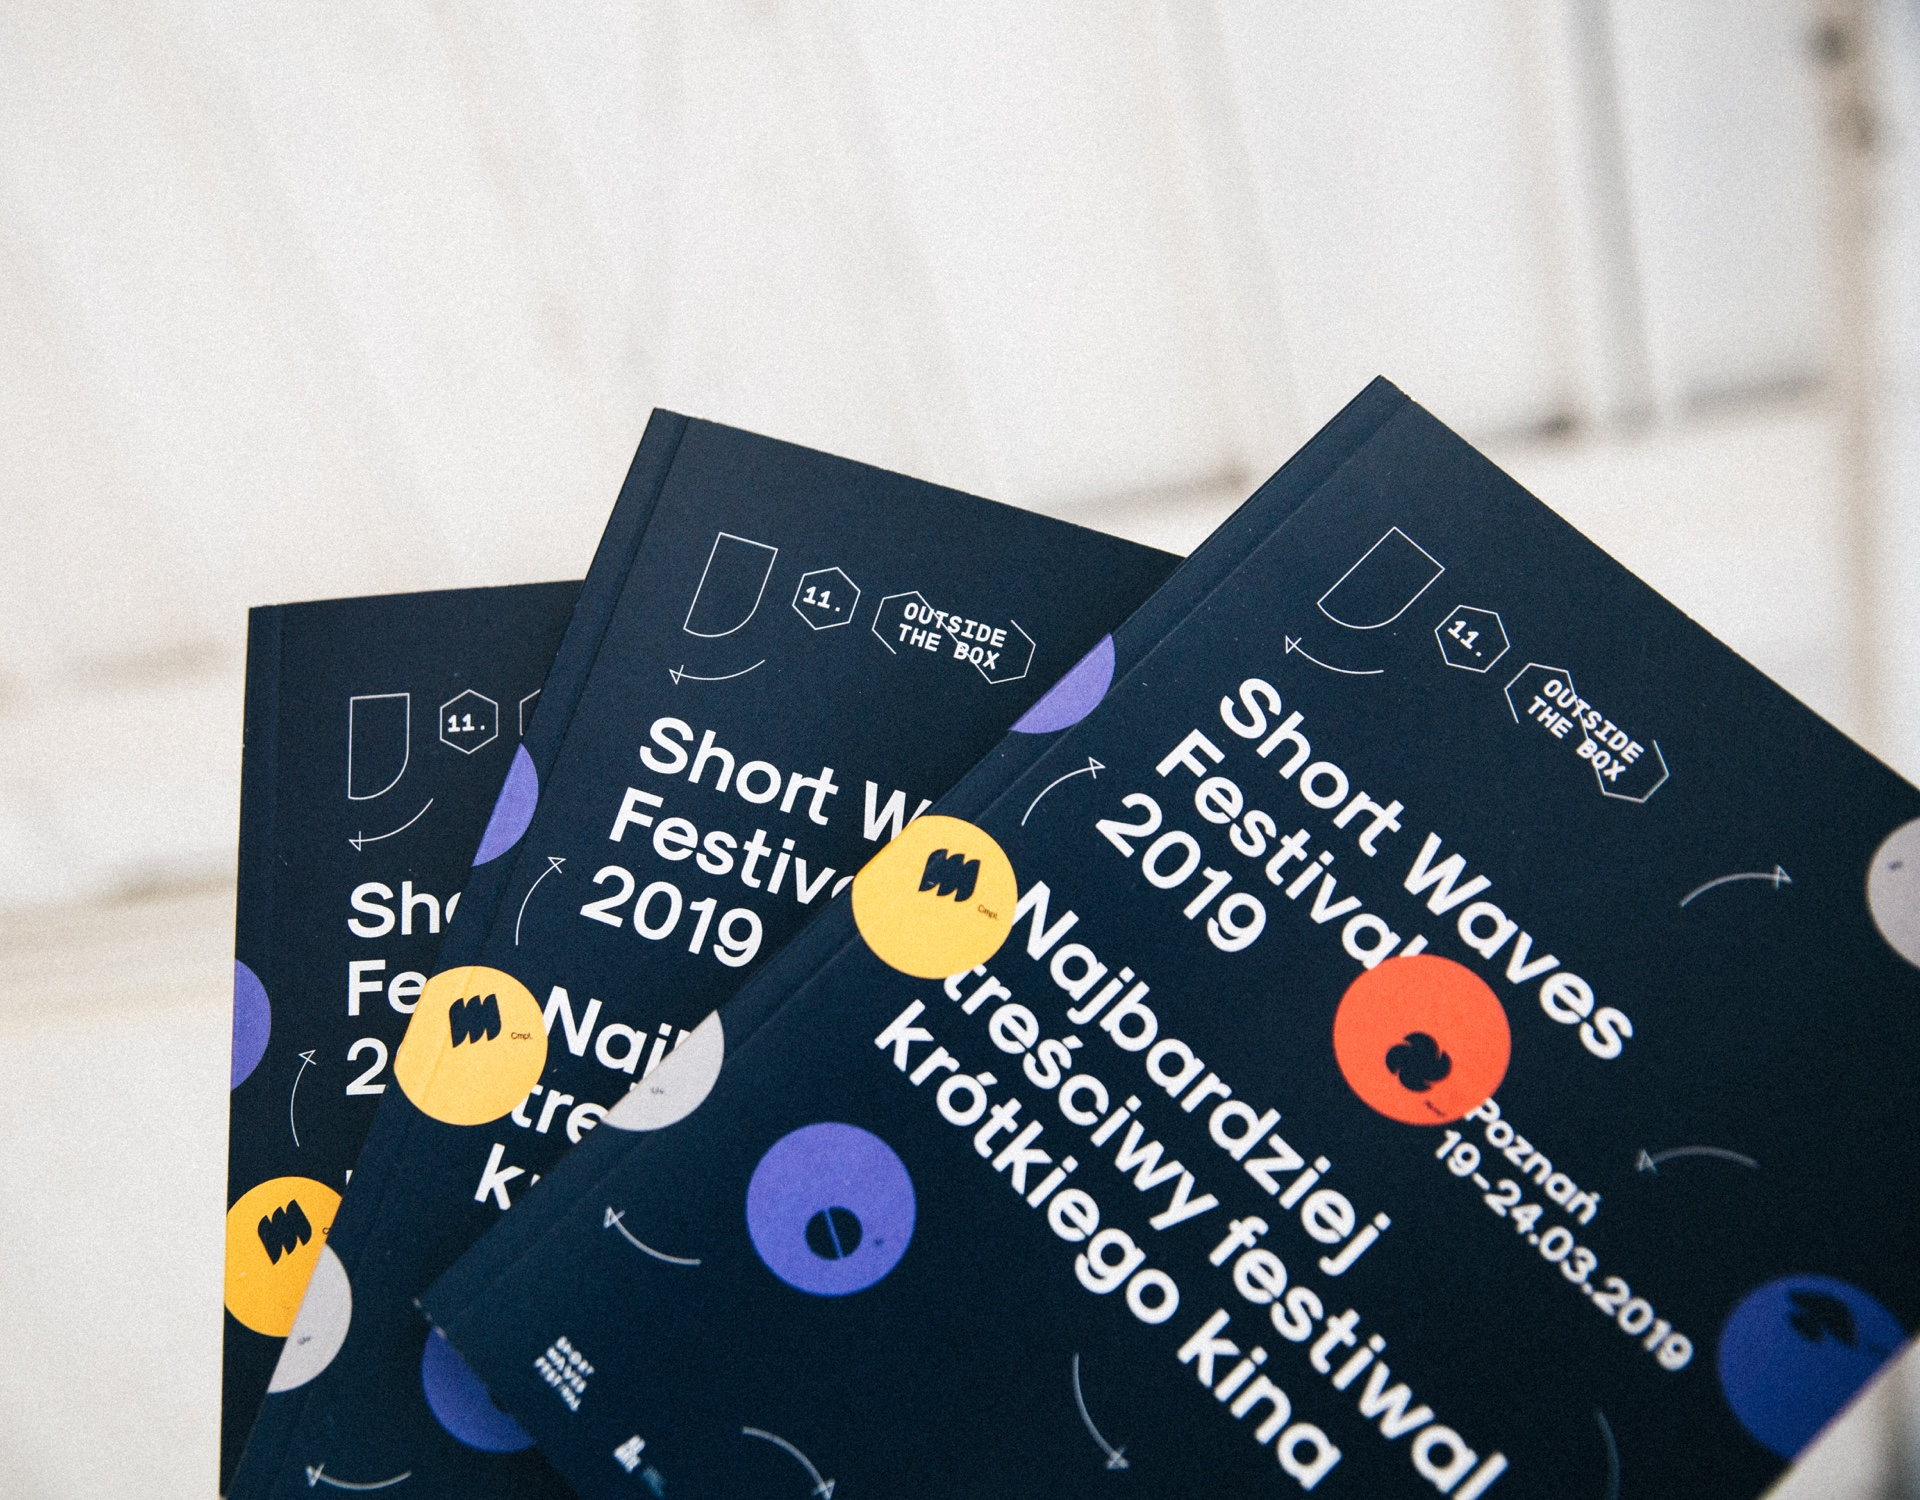 Short Waves Festival 2019 - Branding - Project thumbnail